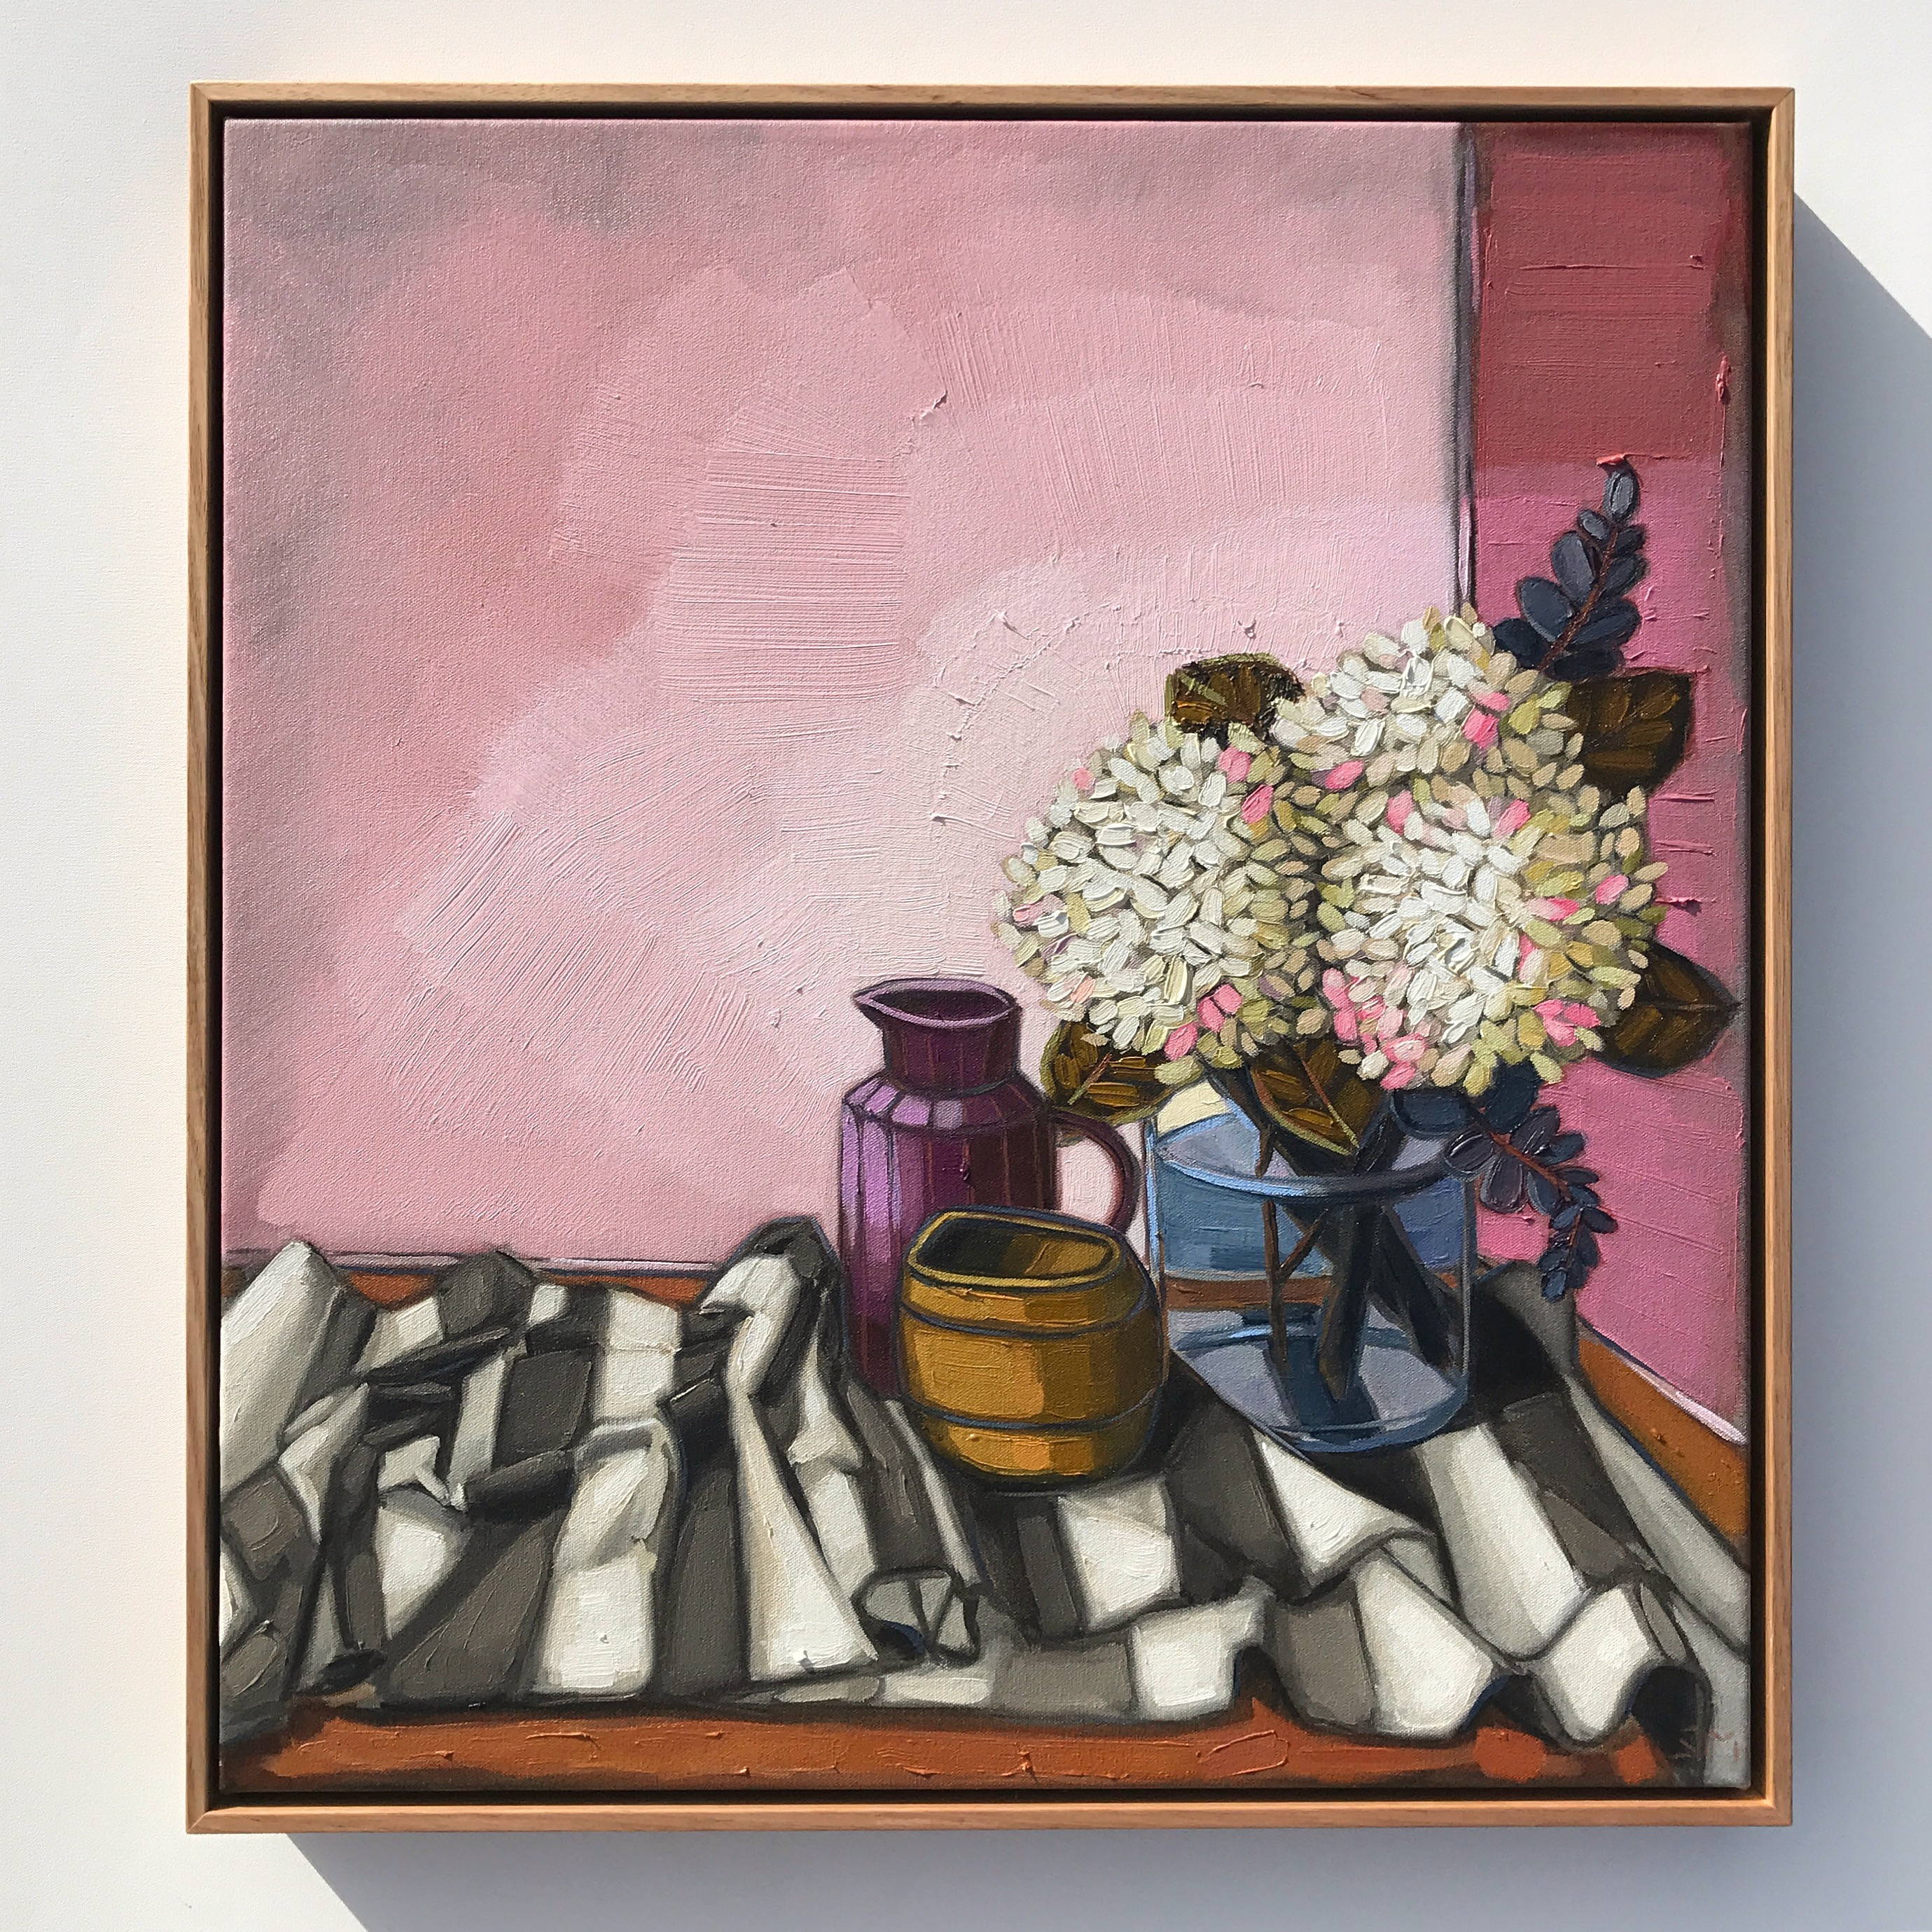 08_17 The Cloth Collection 'Hydrangeas & Pinks' 63x58cm $2,395